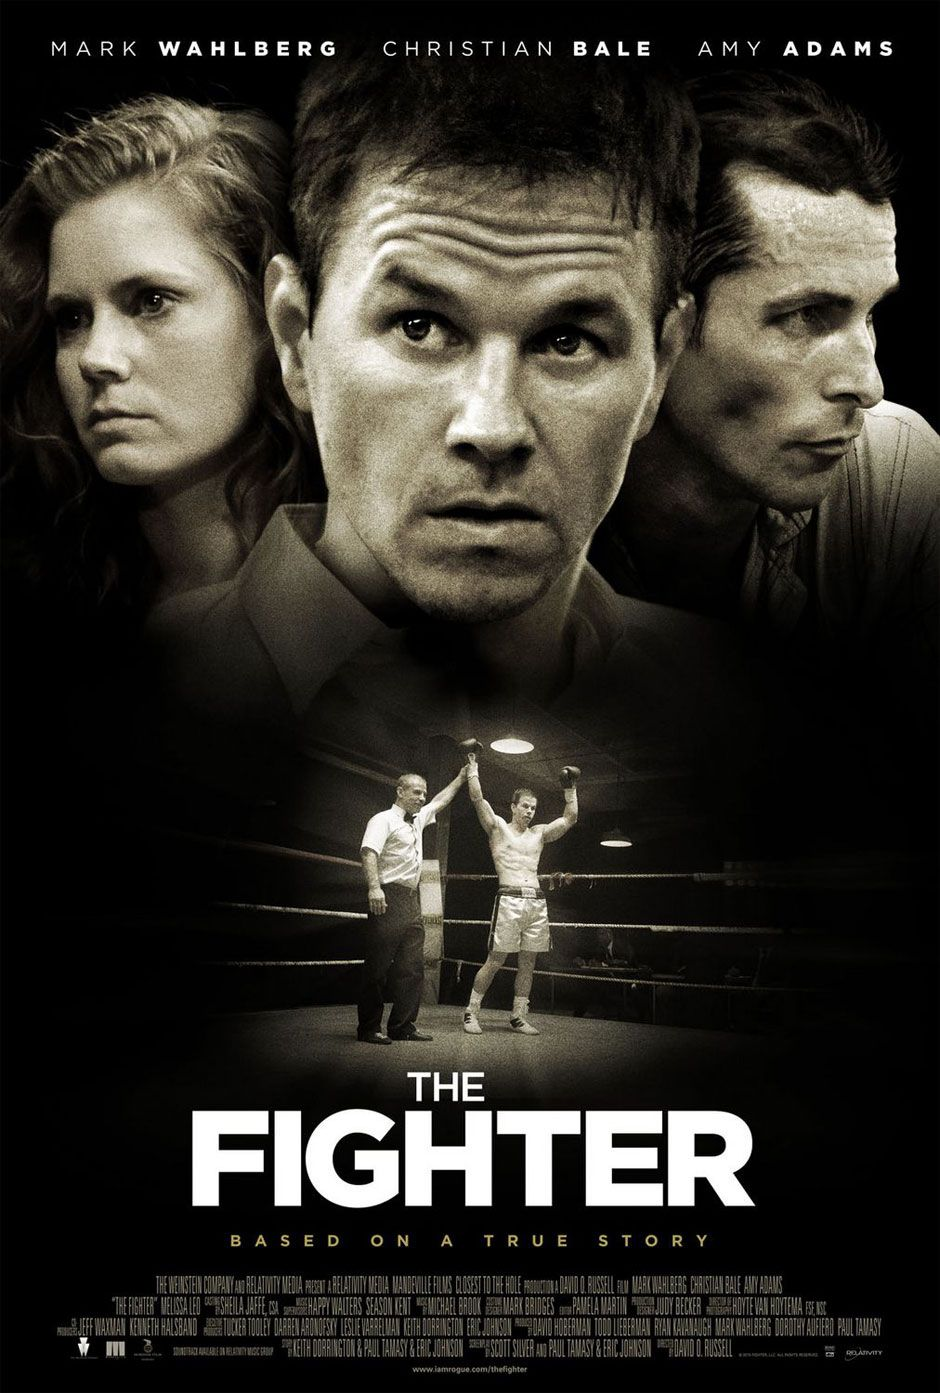 the-fighter-movie-poster11.jpg 940×1.393 piksel